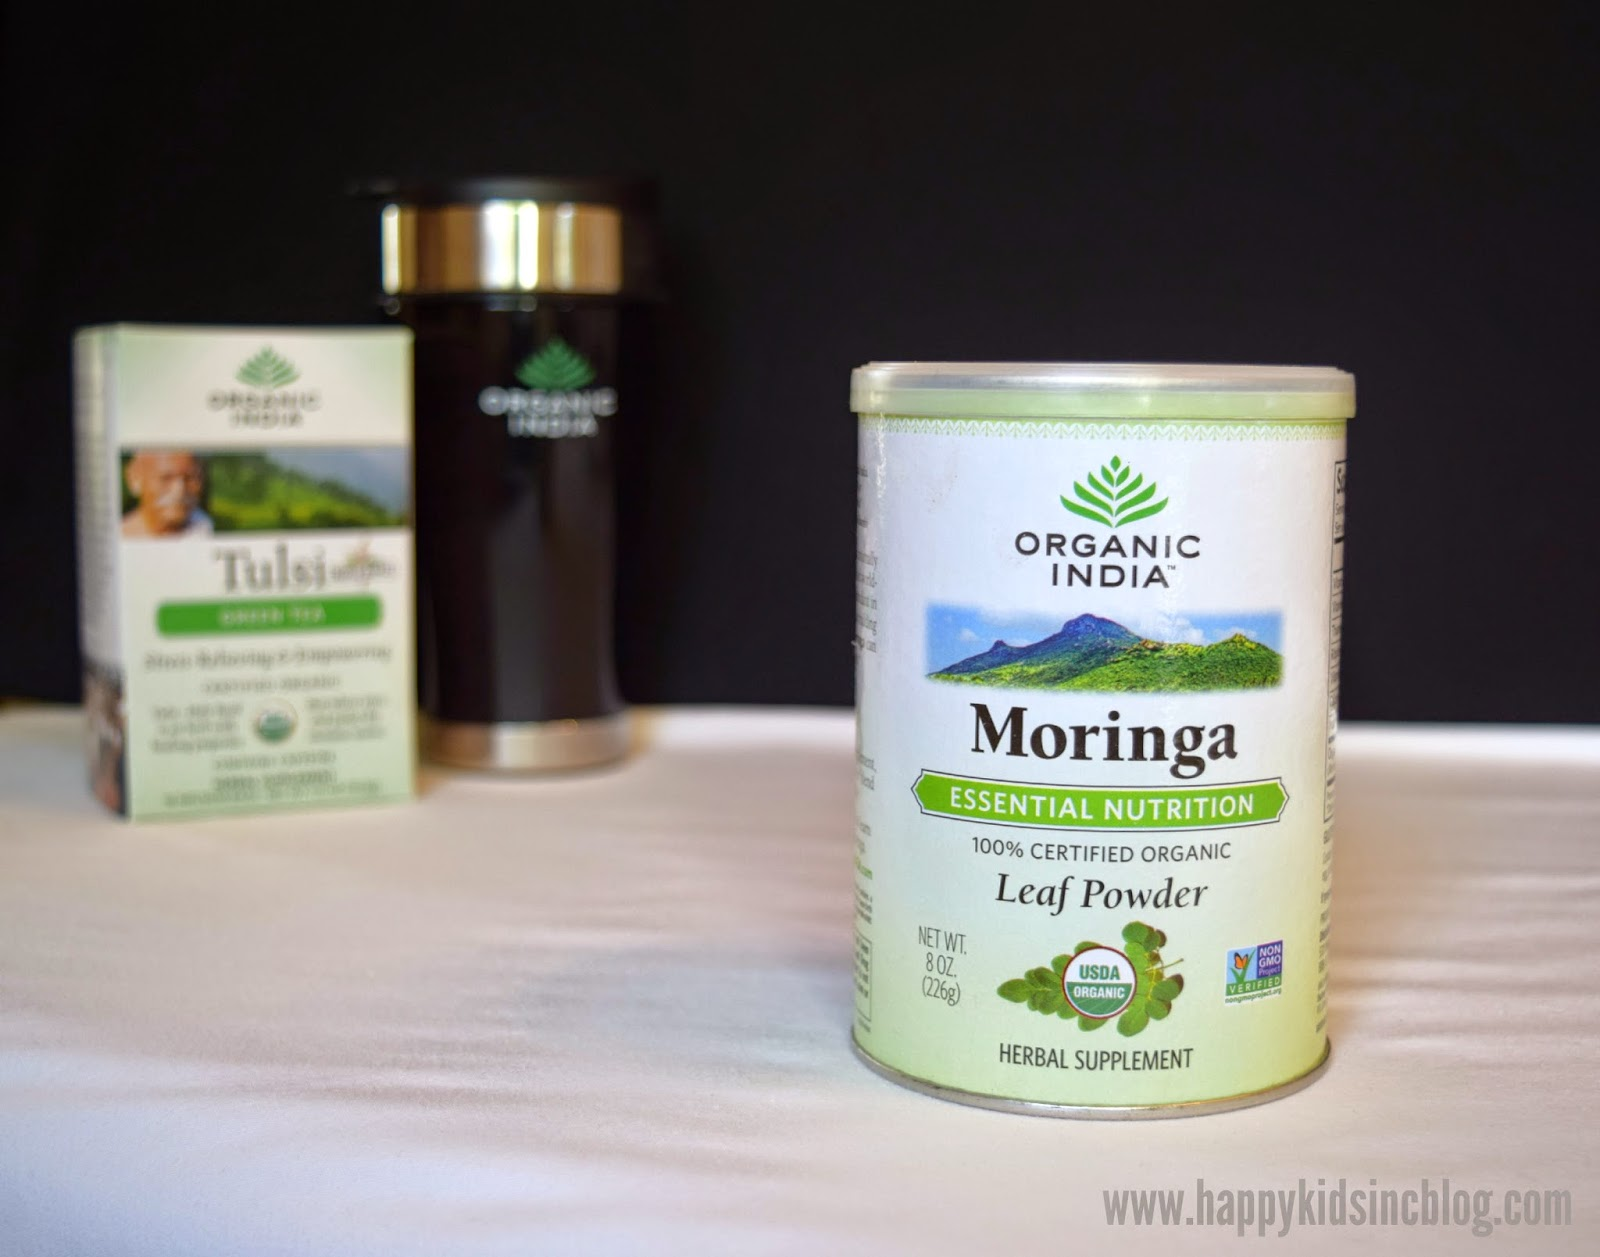 Organic India Moringa Teas and Leaf Powder